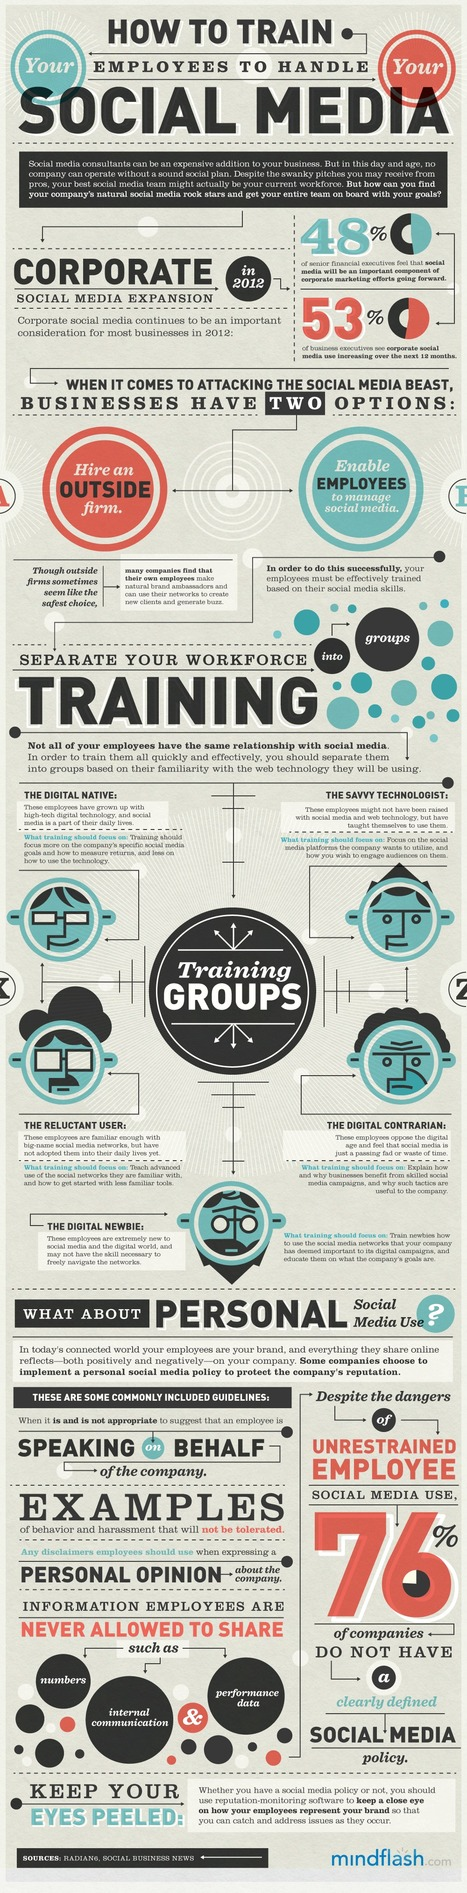 How To Train Your Employees To Handle Social Media - nice infographic! | Organisation Development | Scoop.it